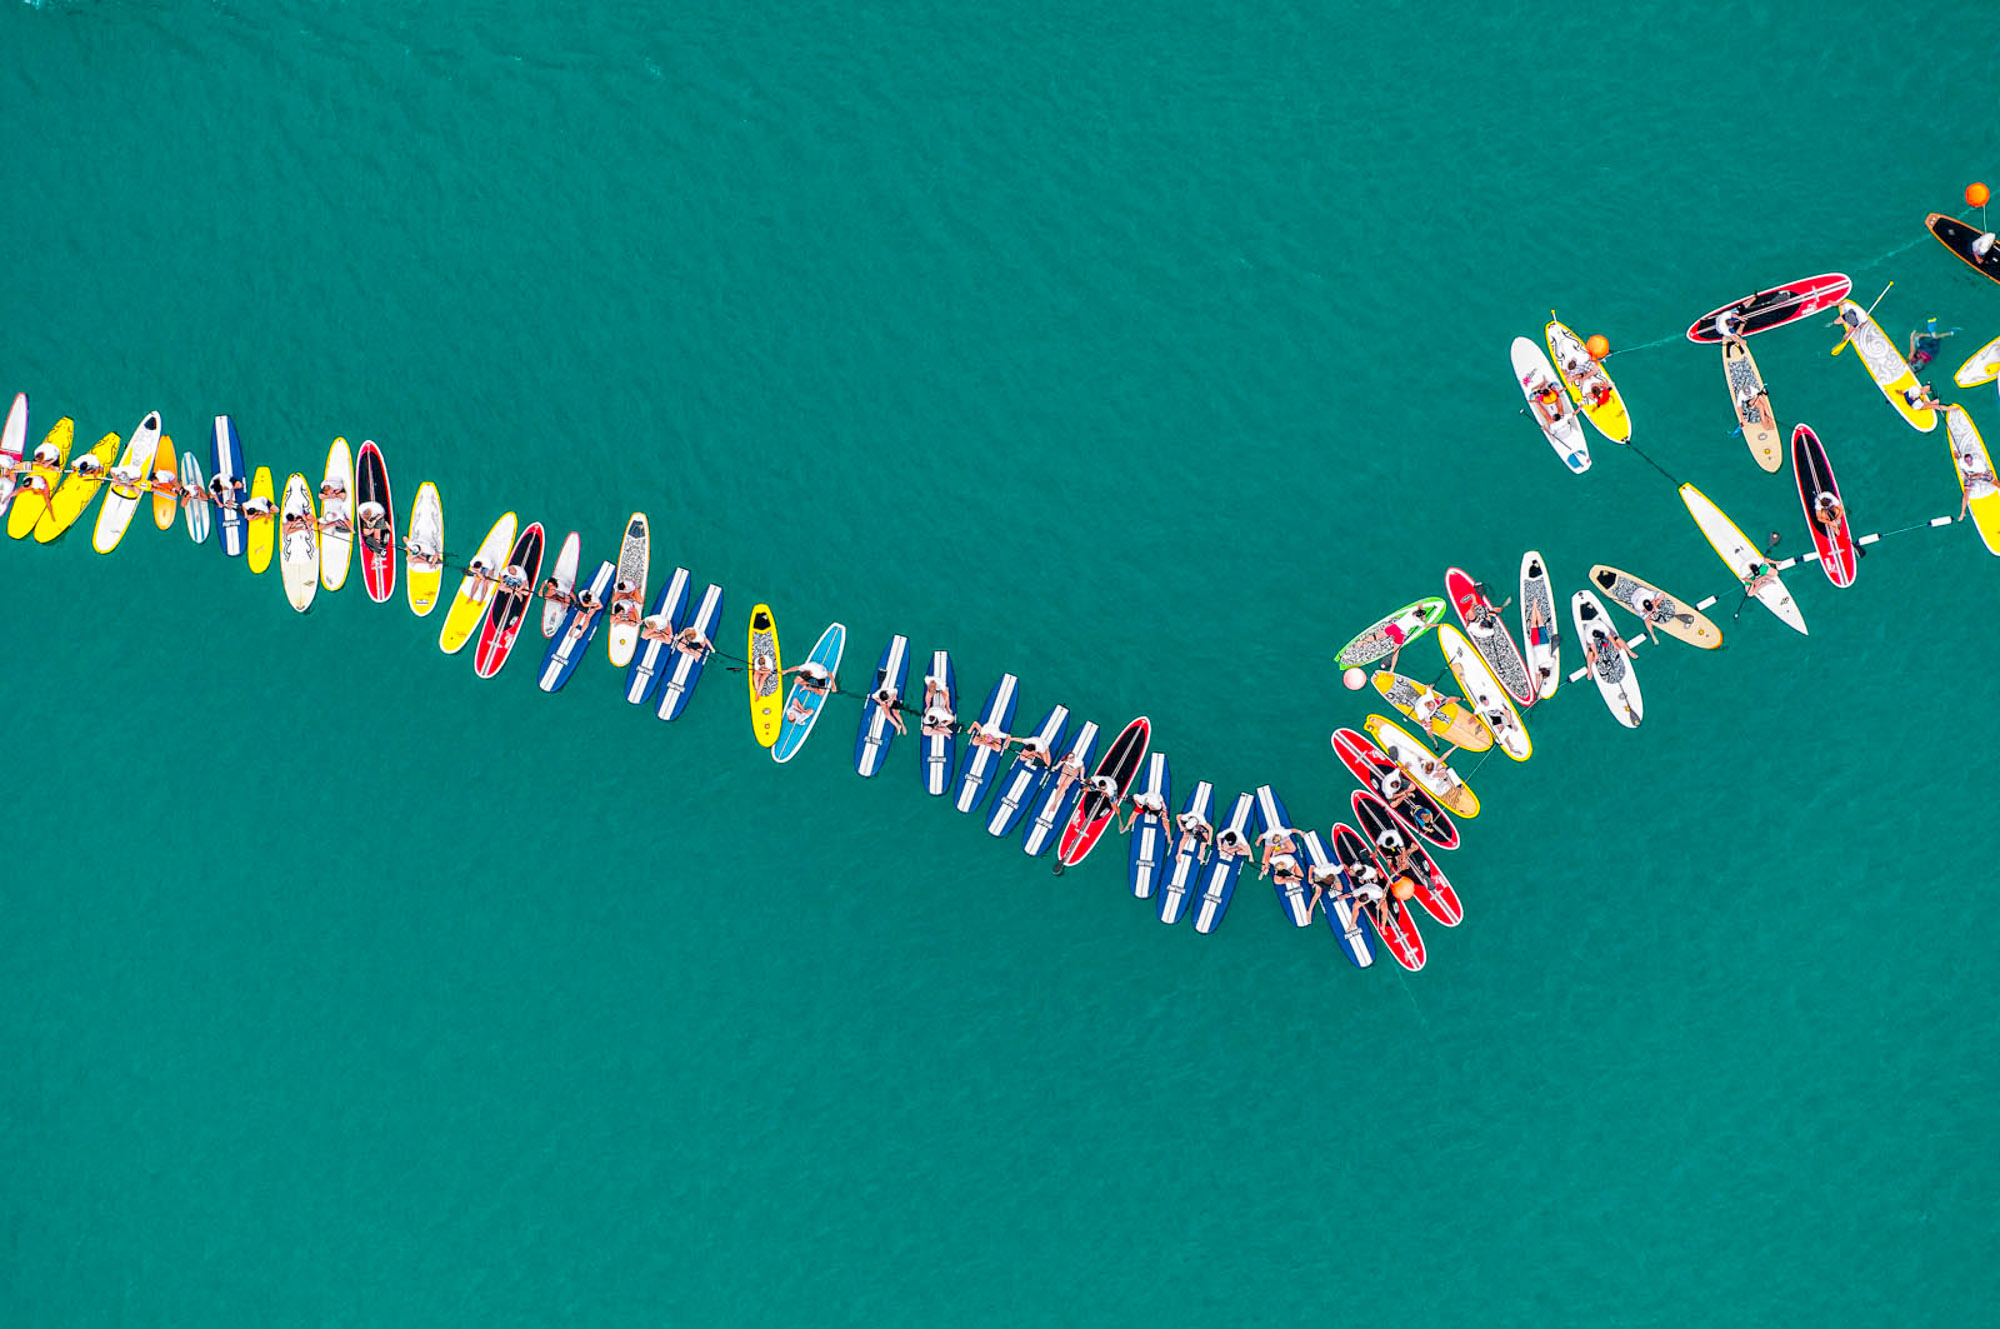 Paddle Board Line Up